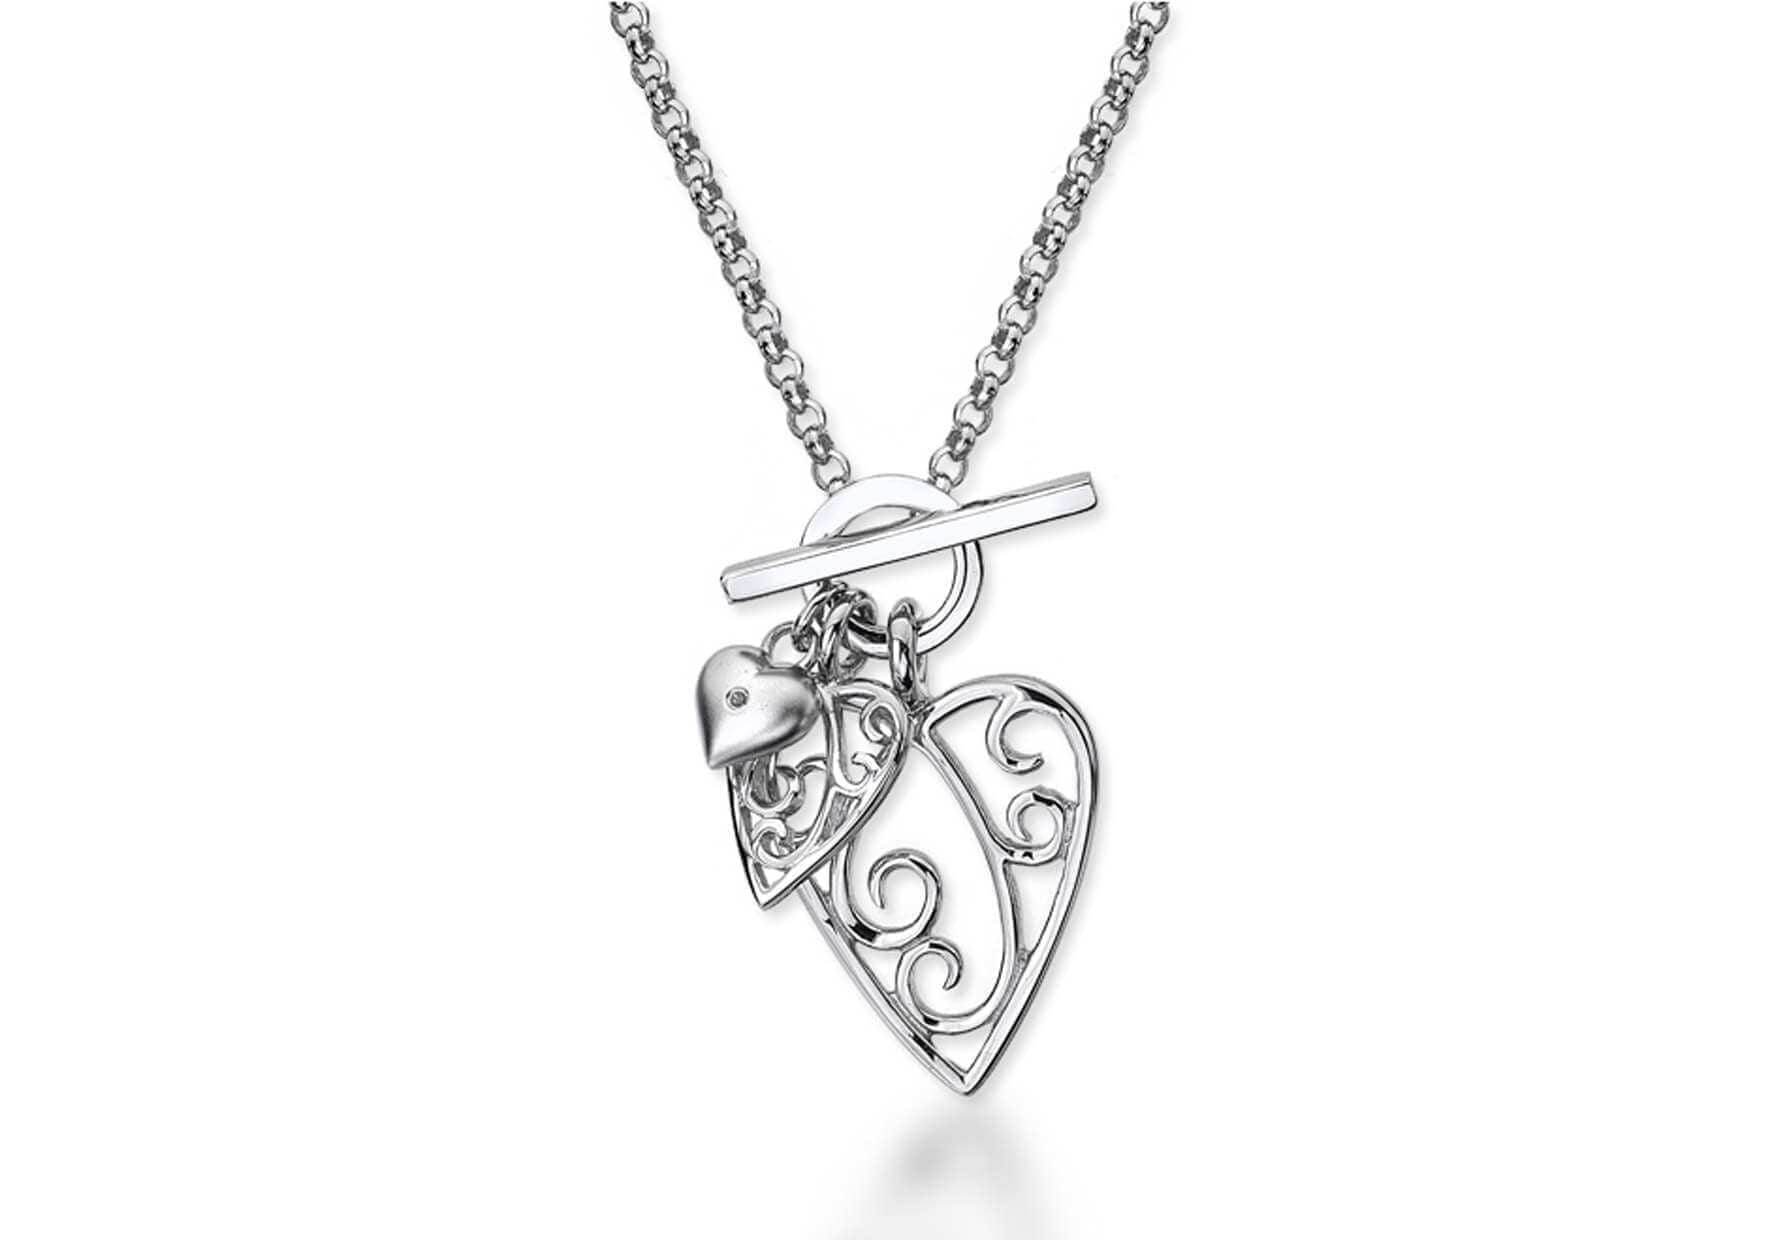 Lily & Lotty Sterling Silver & Diamond Necklace